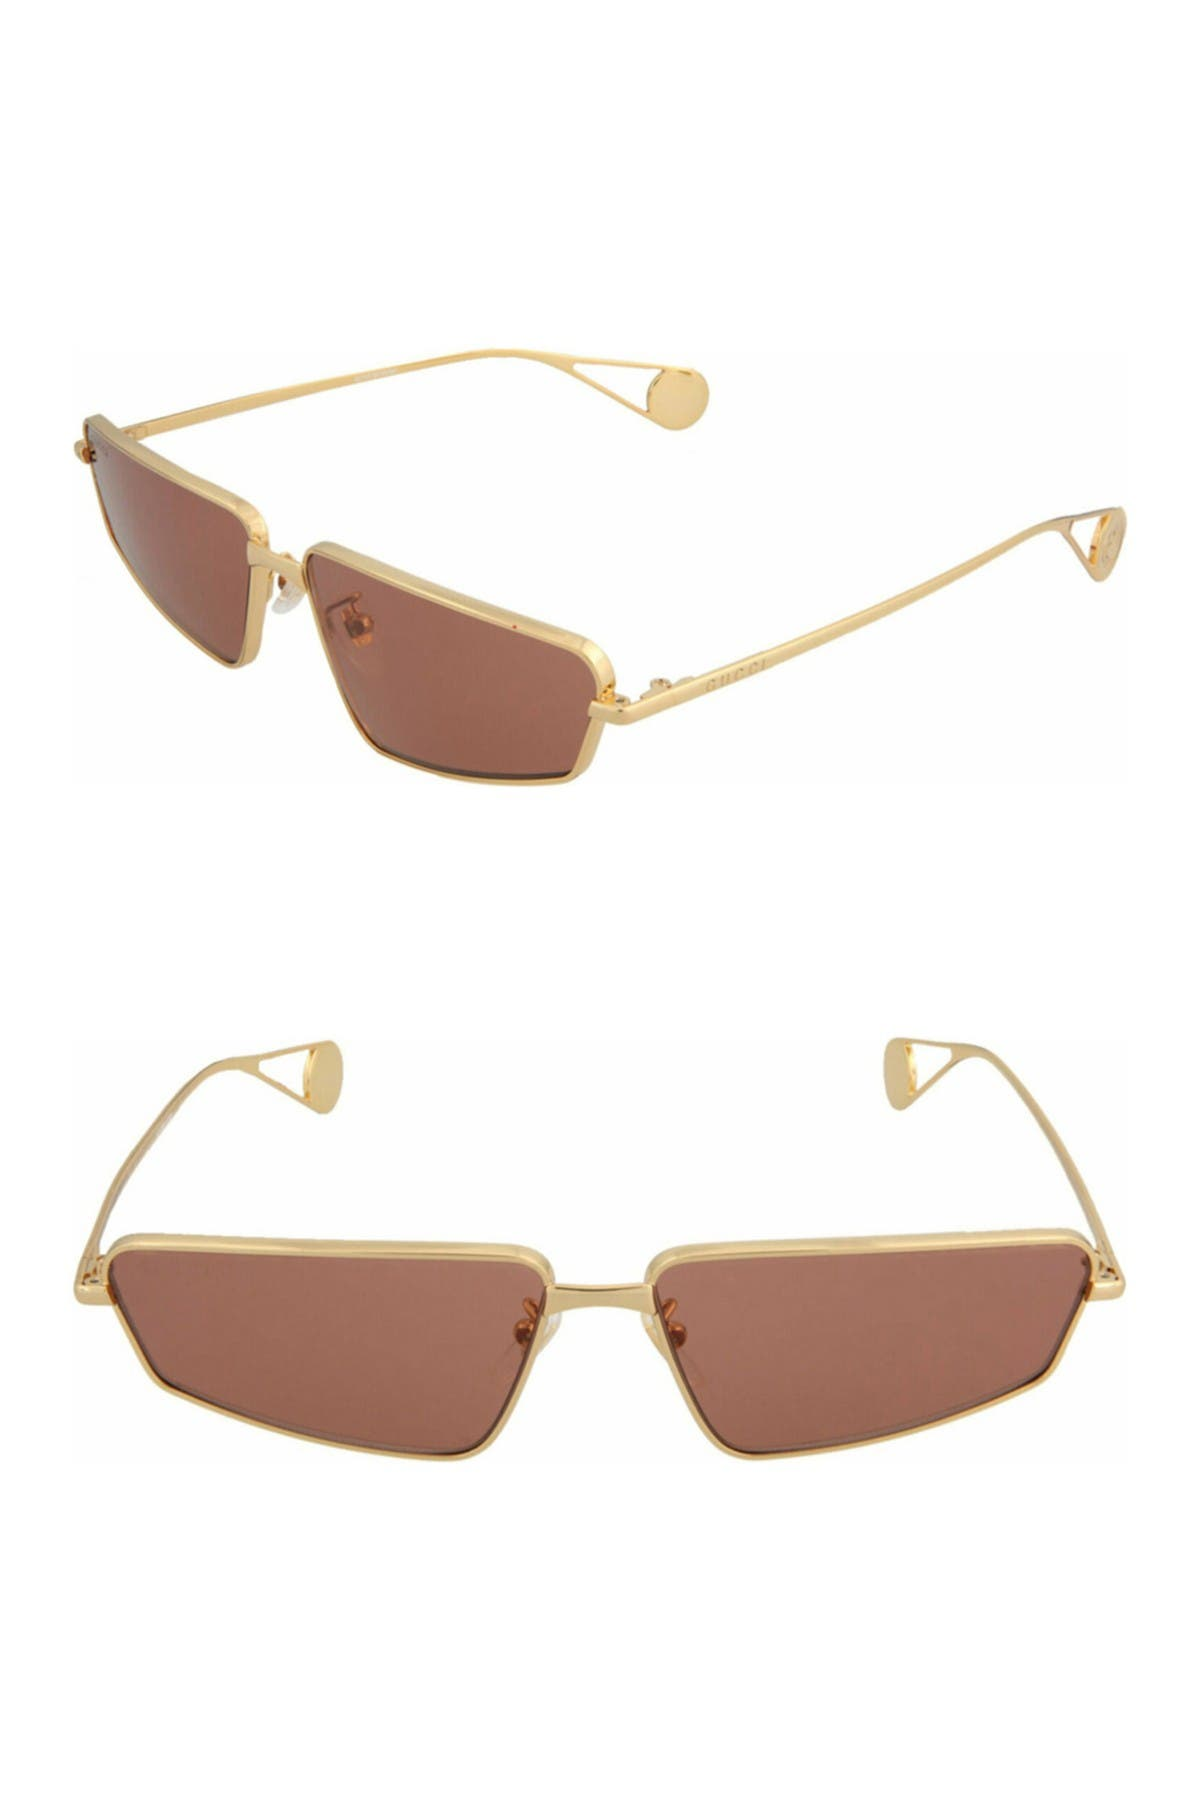 Gucci 63mm Novelty Rectangle Sunglasses In Gold